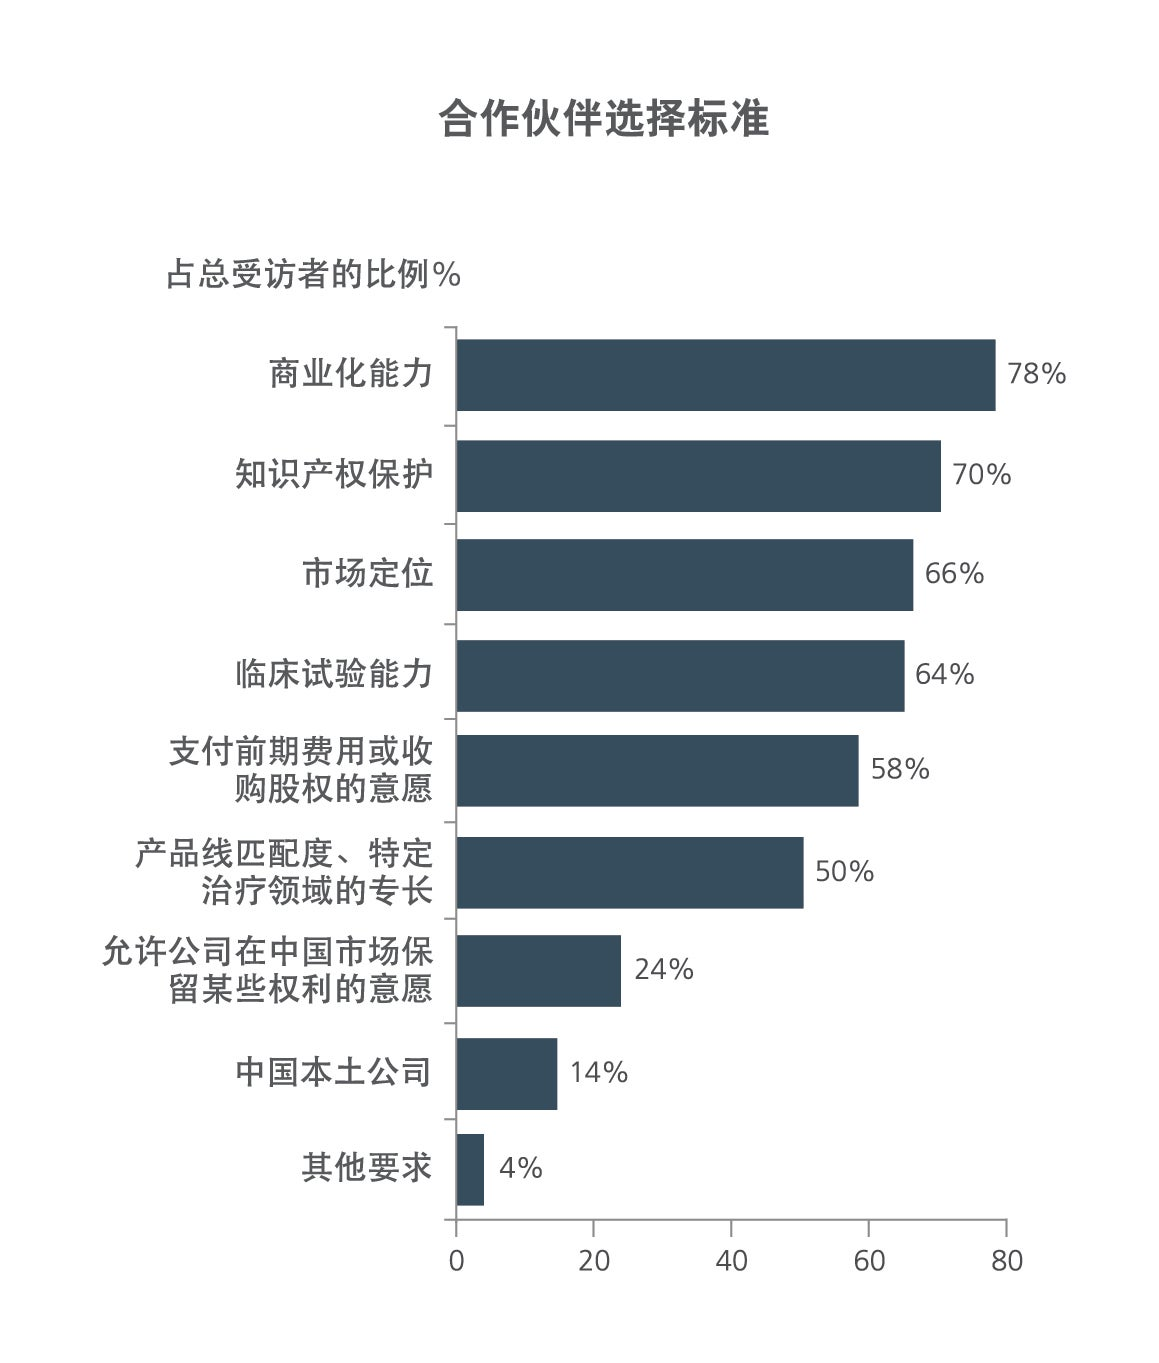 partner selection criteria in china